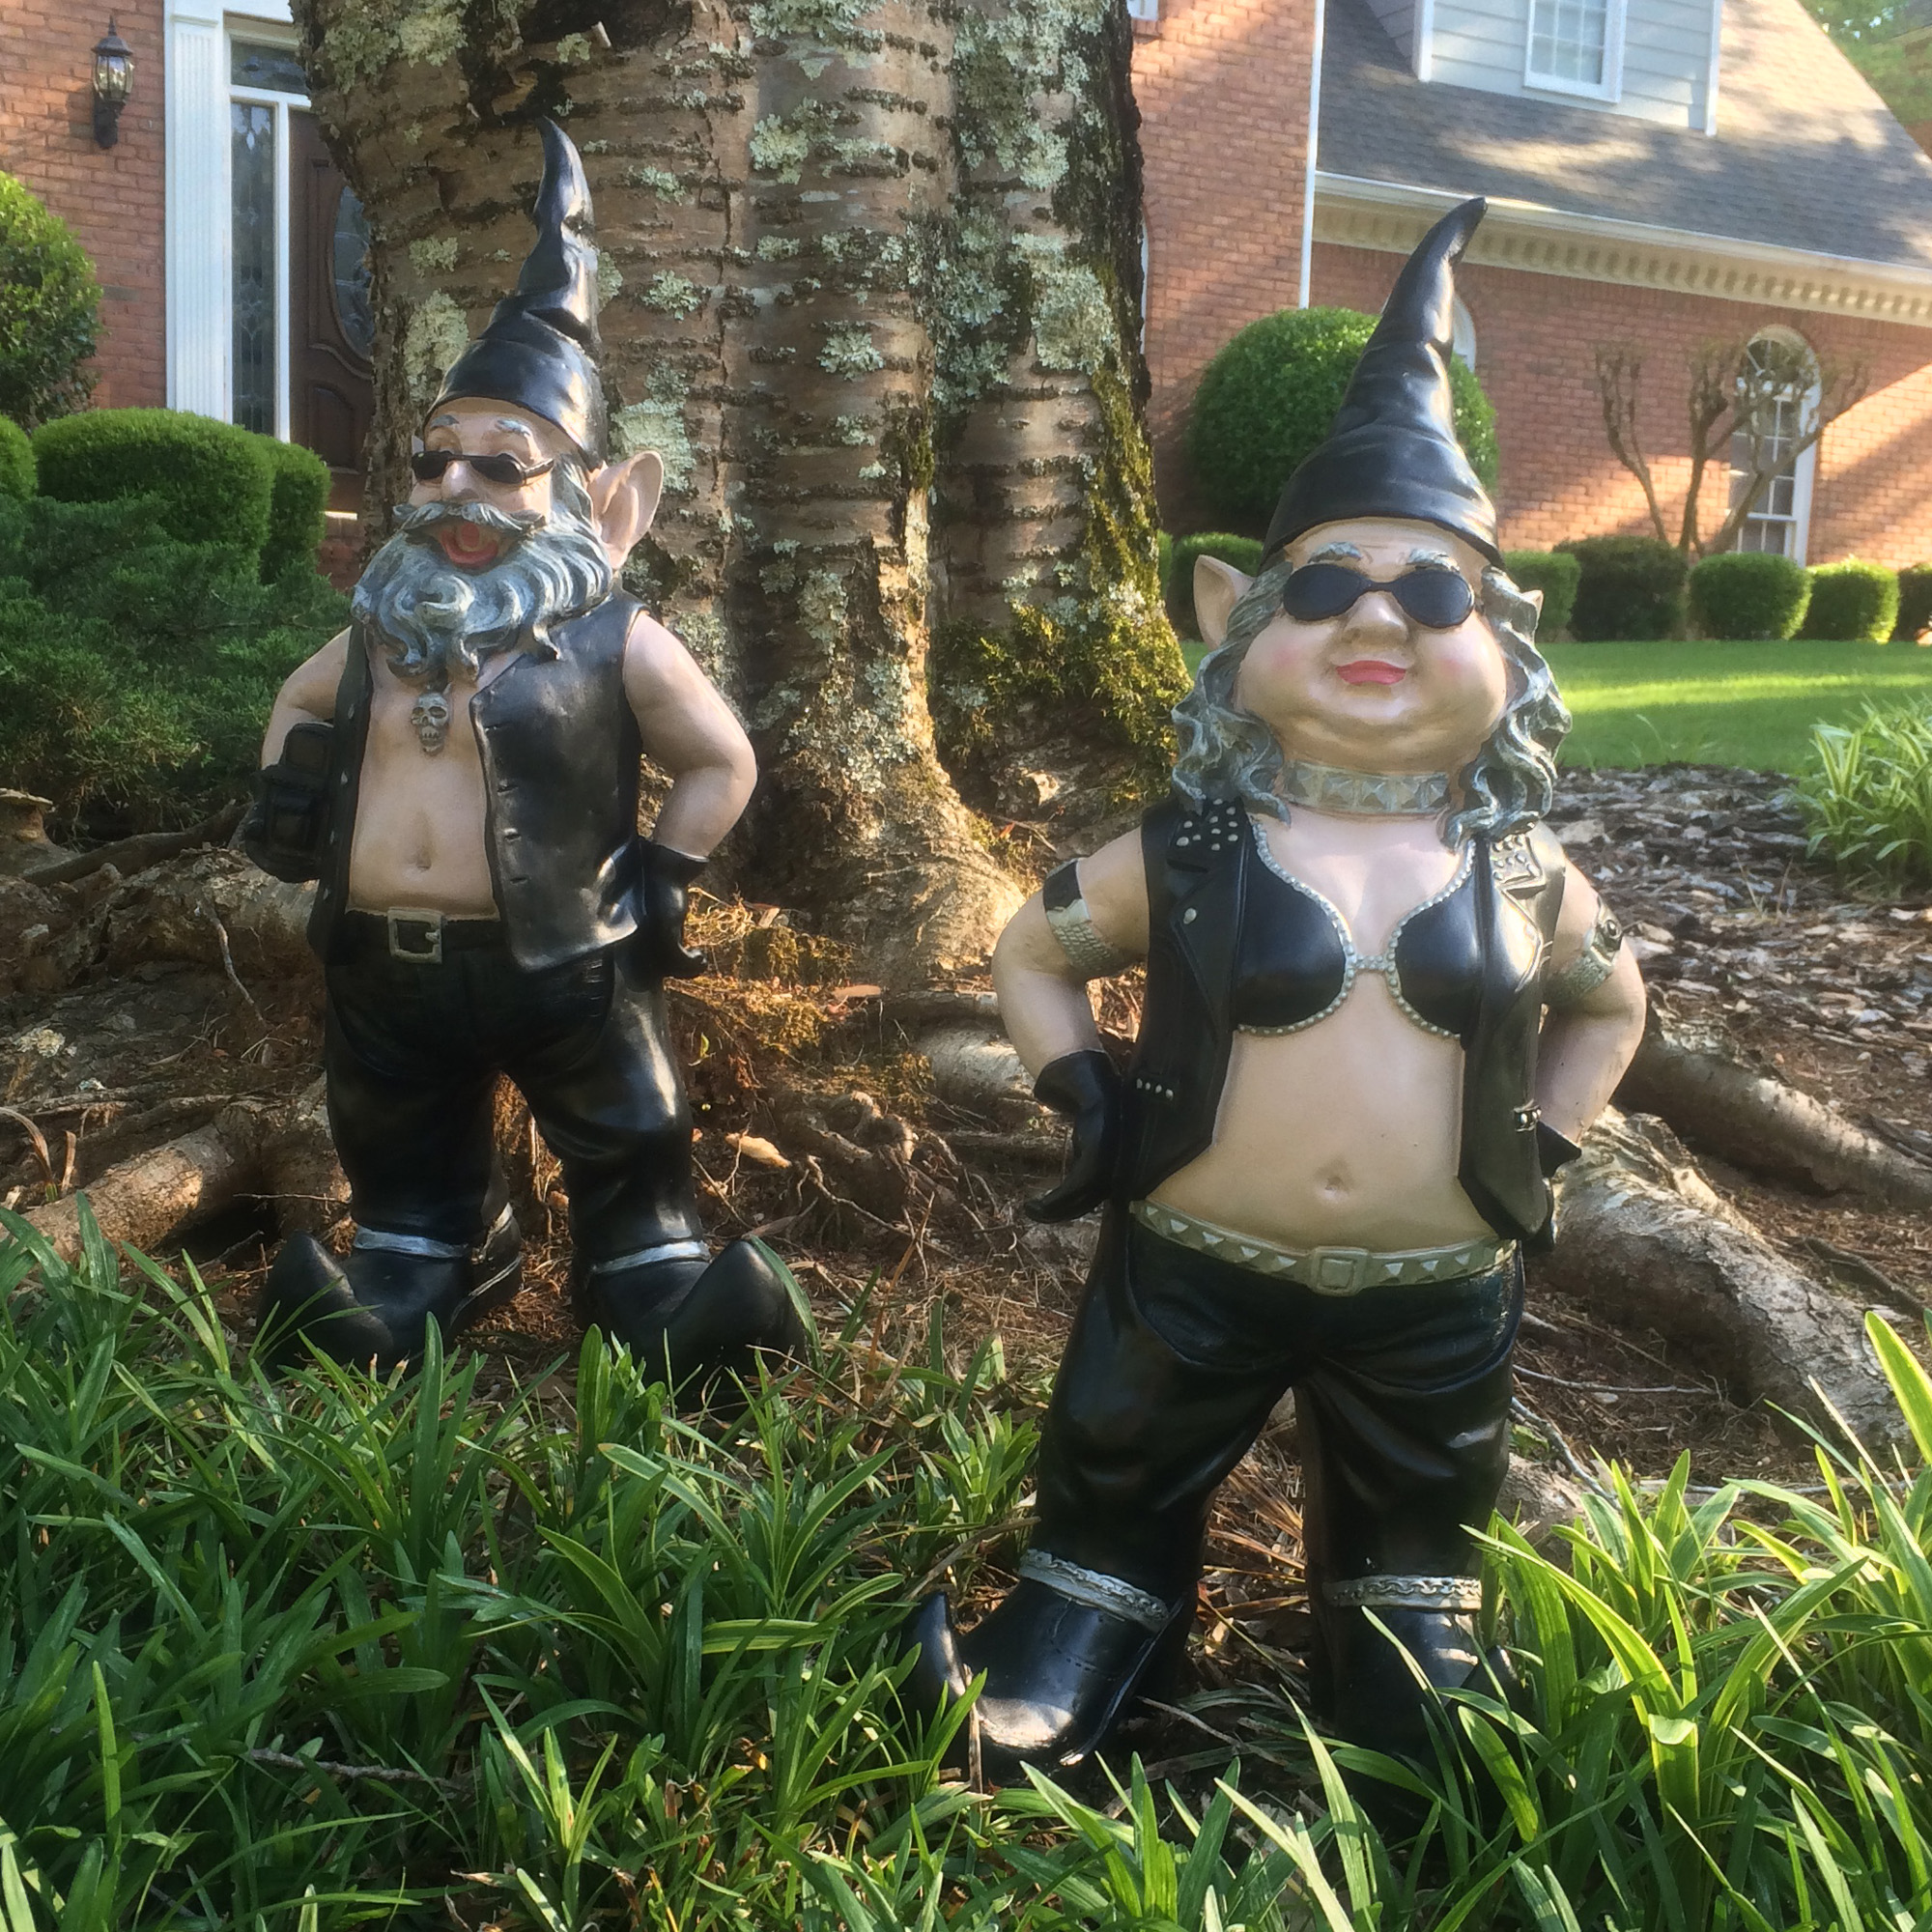 """Homestyles Nowaday Gnomes Biker Gnomes """"Biker & Babe the Gnomes"""" Garden Gnome 2-Piece Set Home and... by"""